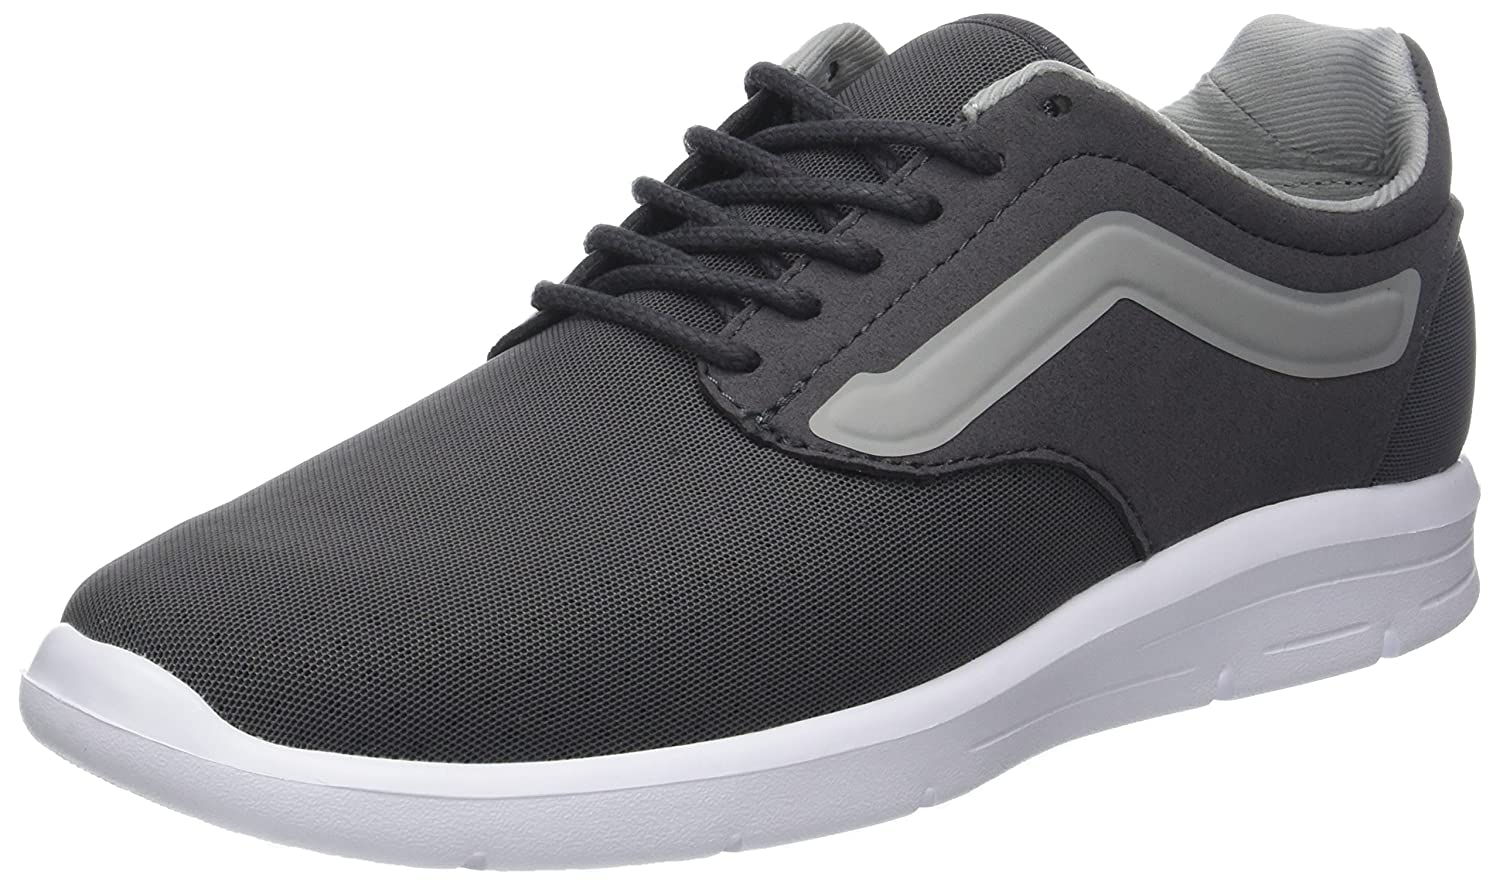 abcbe831c9 Vans Unisex Adults  Iso 1.5 Trainers